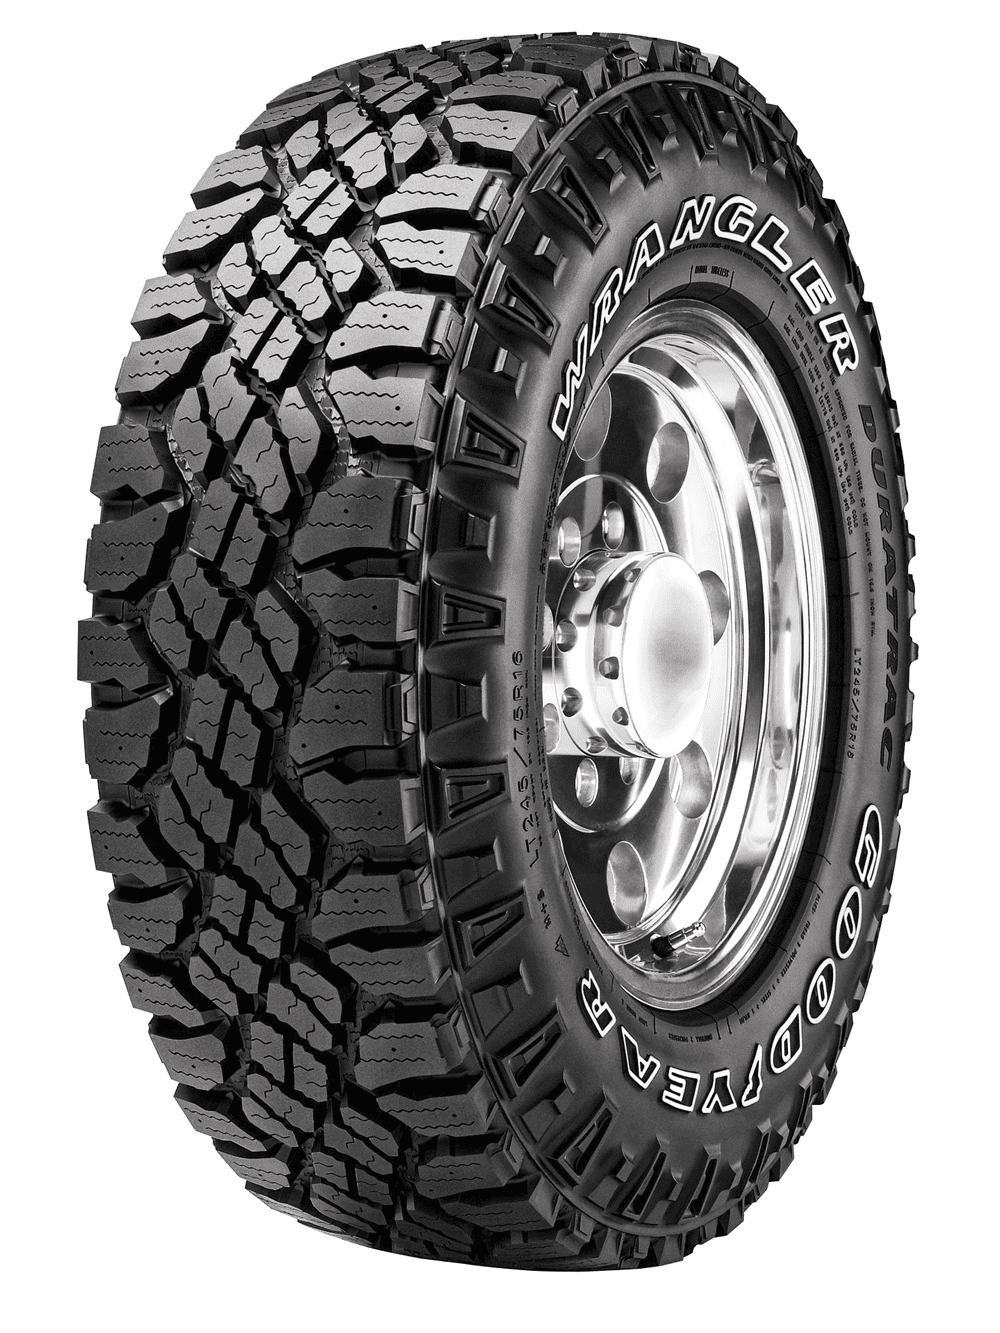 Yokohama Geolandar M/T G003 Off-Road Tire